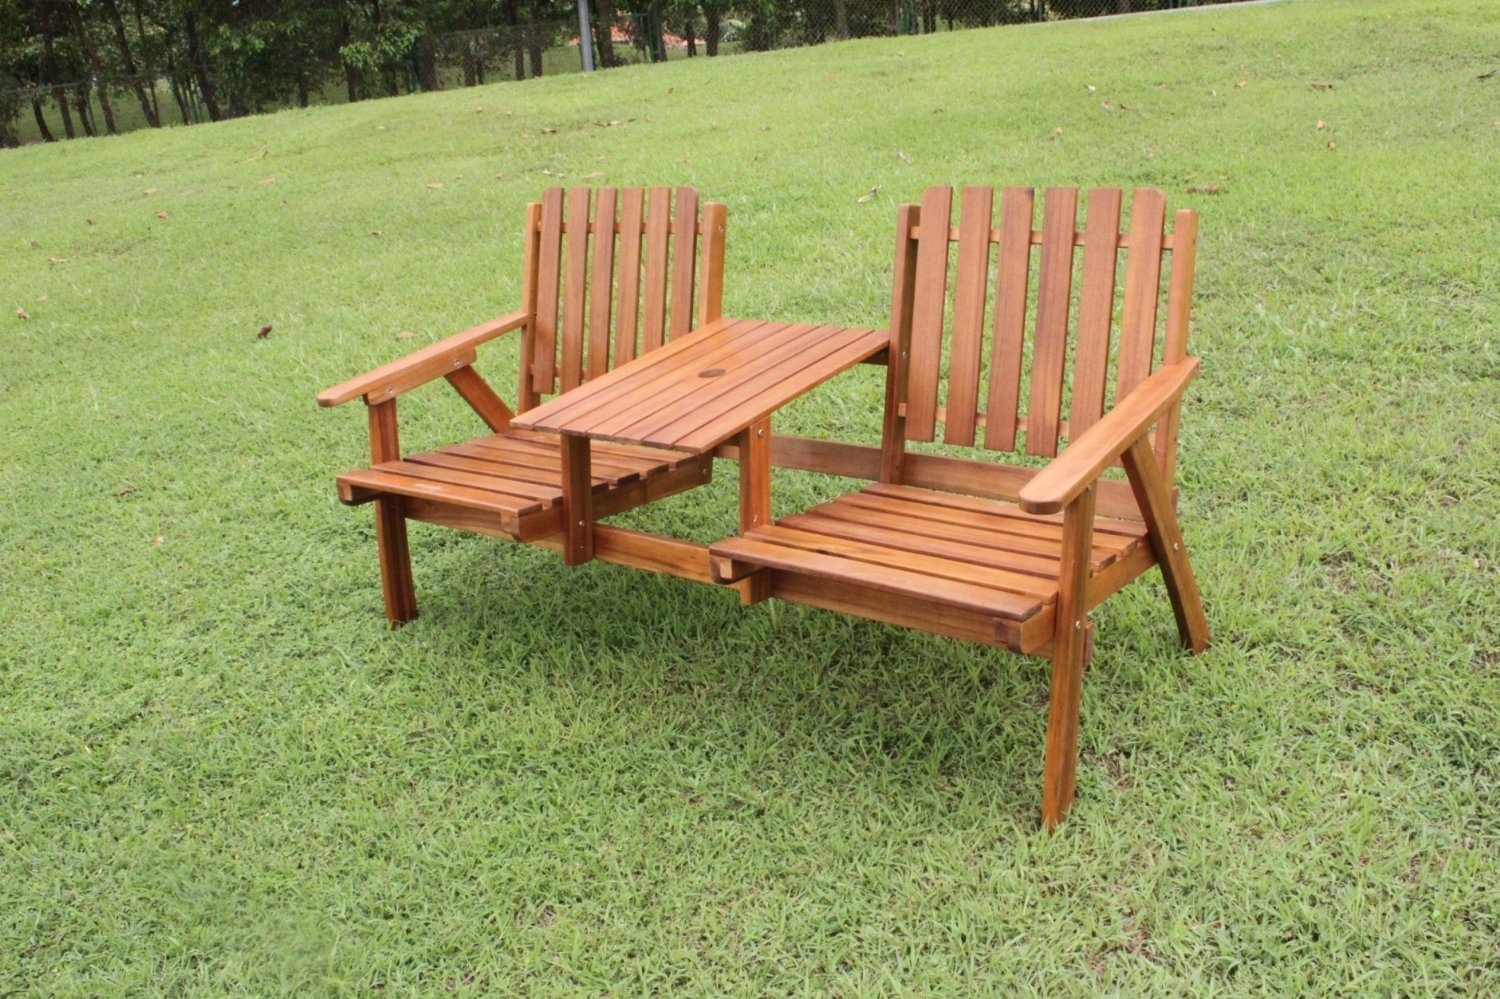 sale - Wooden Garden Furniture Love Seats